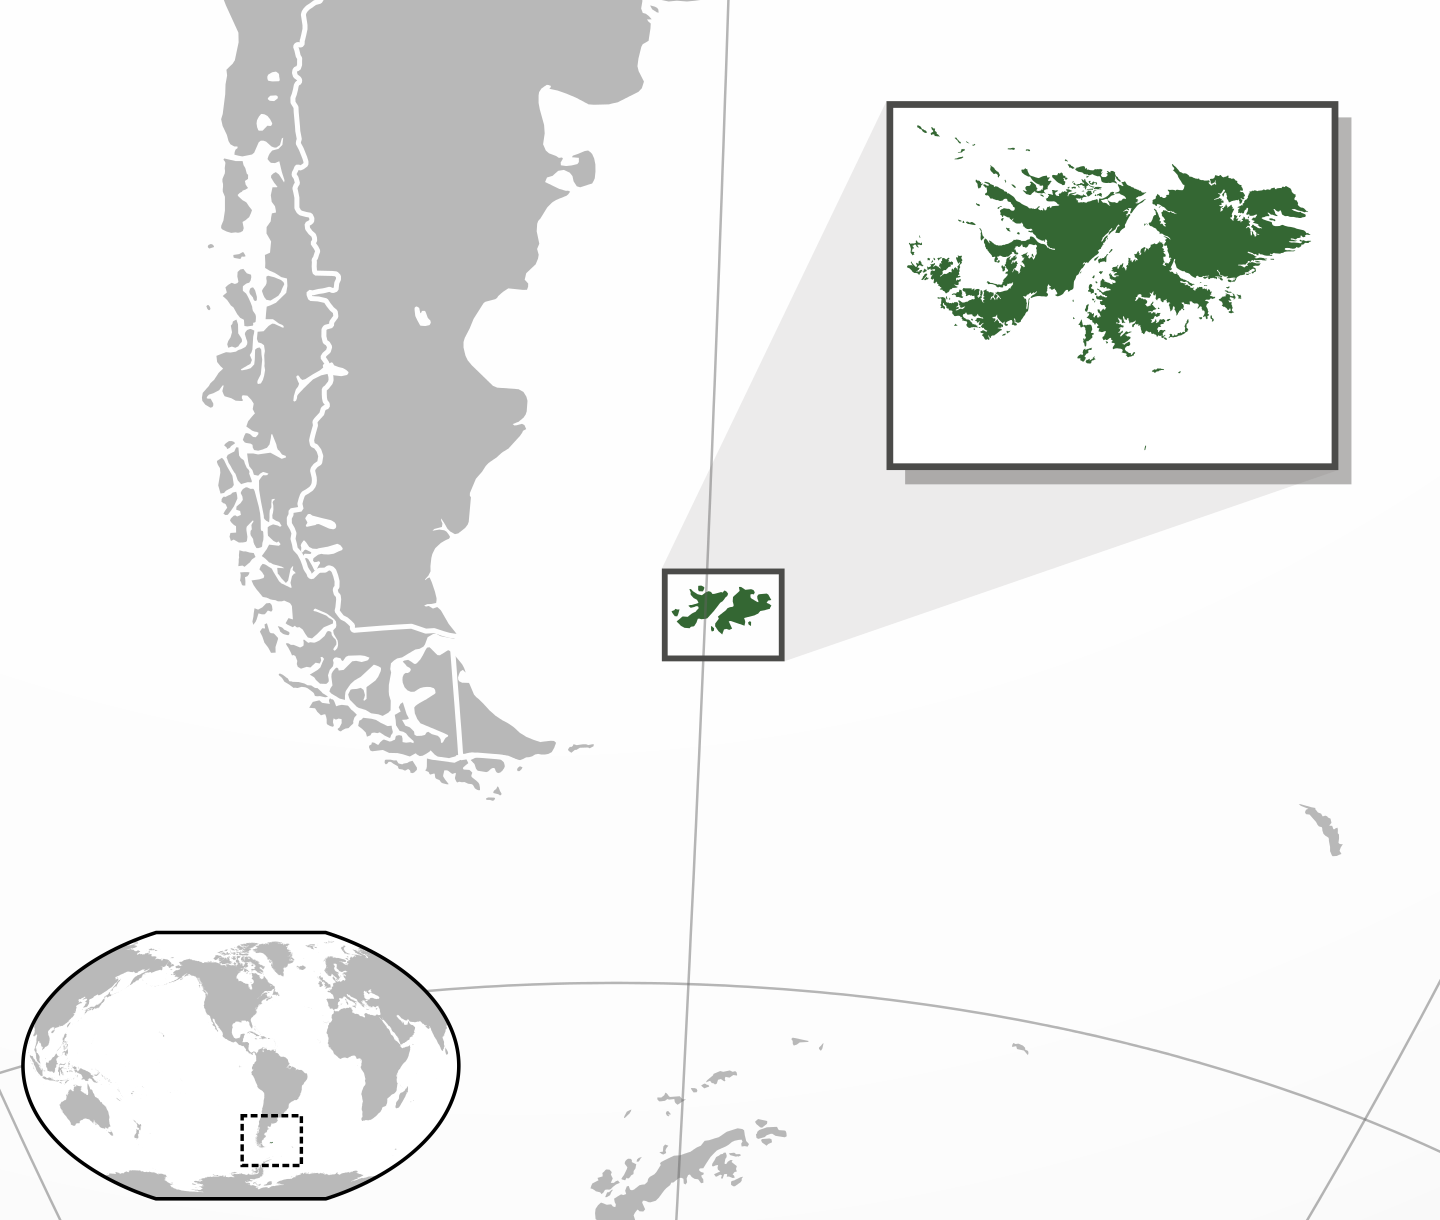 Location map of Falkland Islands in the South Atlantic Ocean